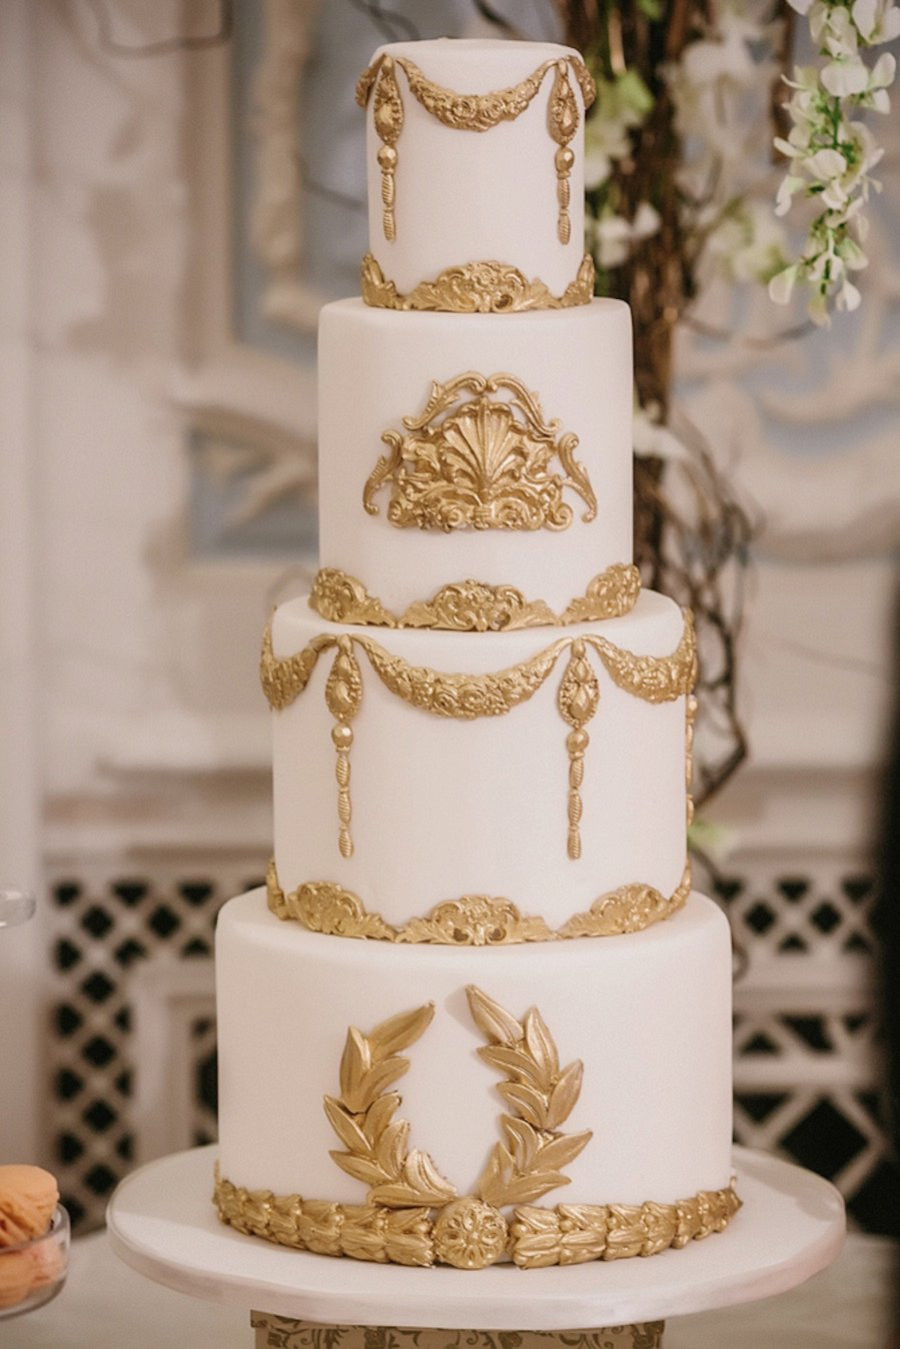 Top Of Wedding Cakes  Top 10 Wedding Cake Trends for 2016